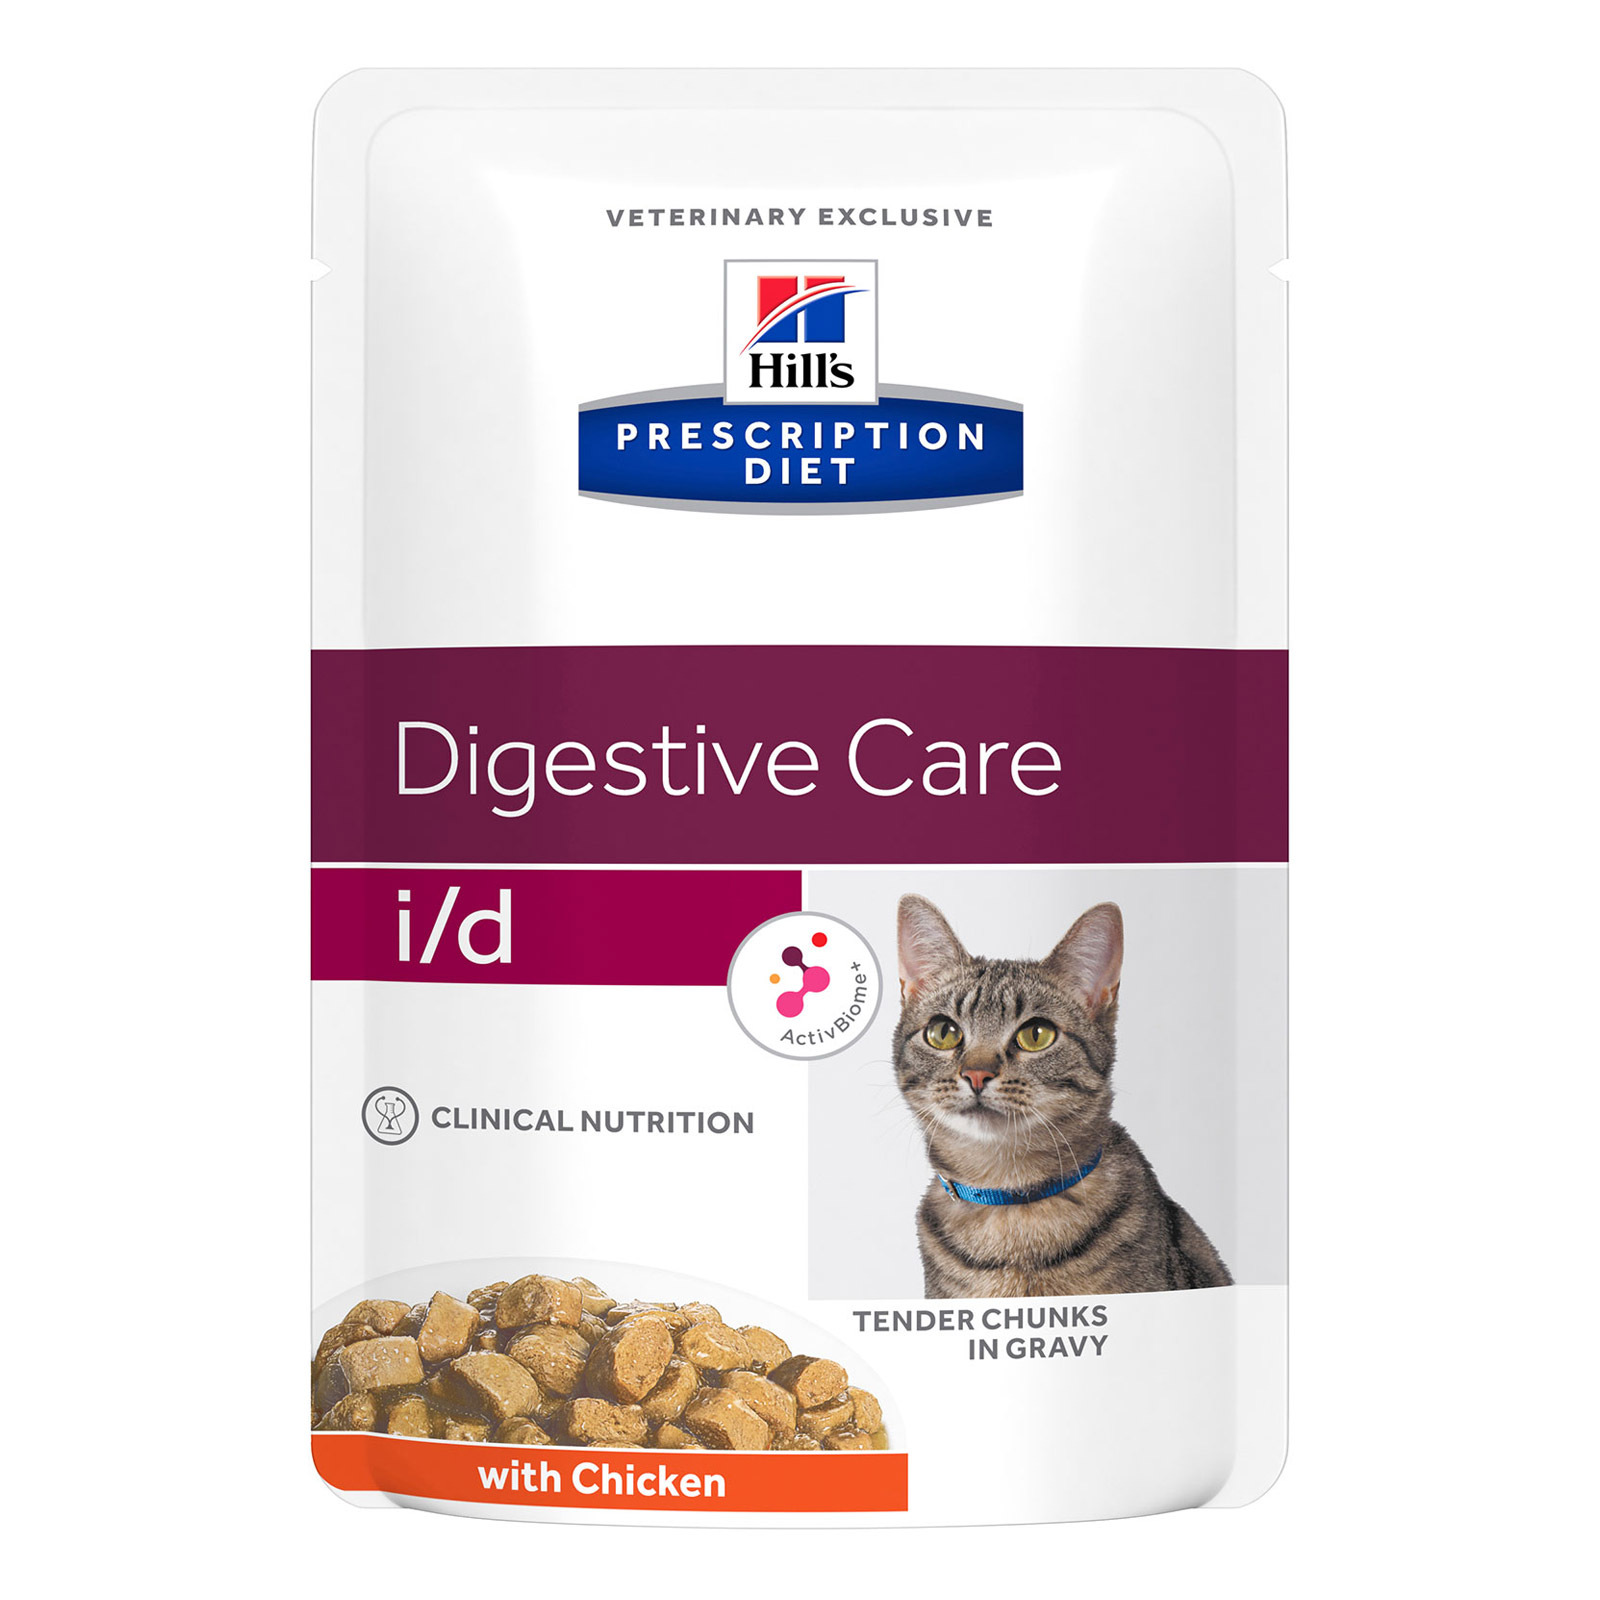 Hill's Prescription Diet i/d Digestive Care Dry Cat Food